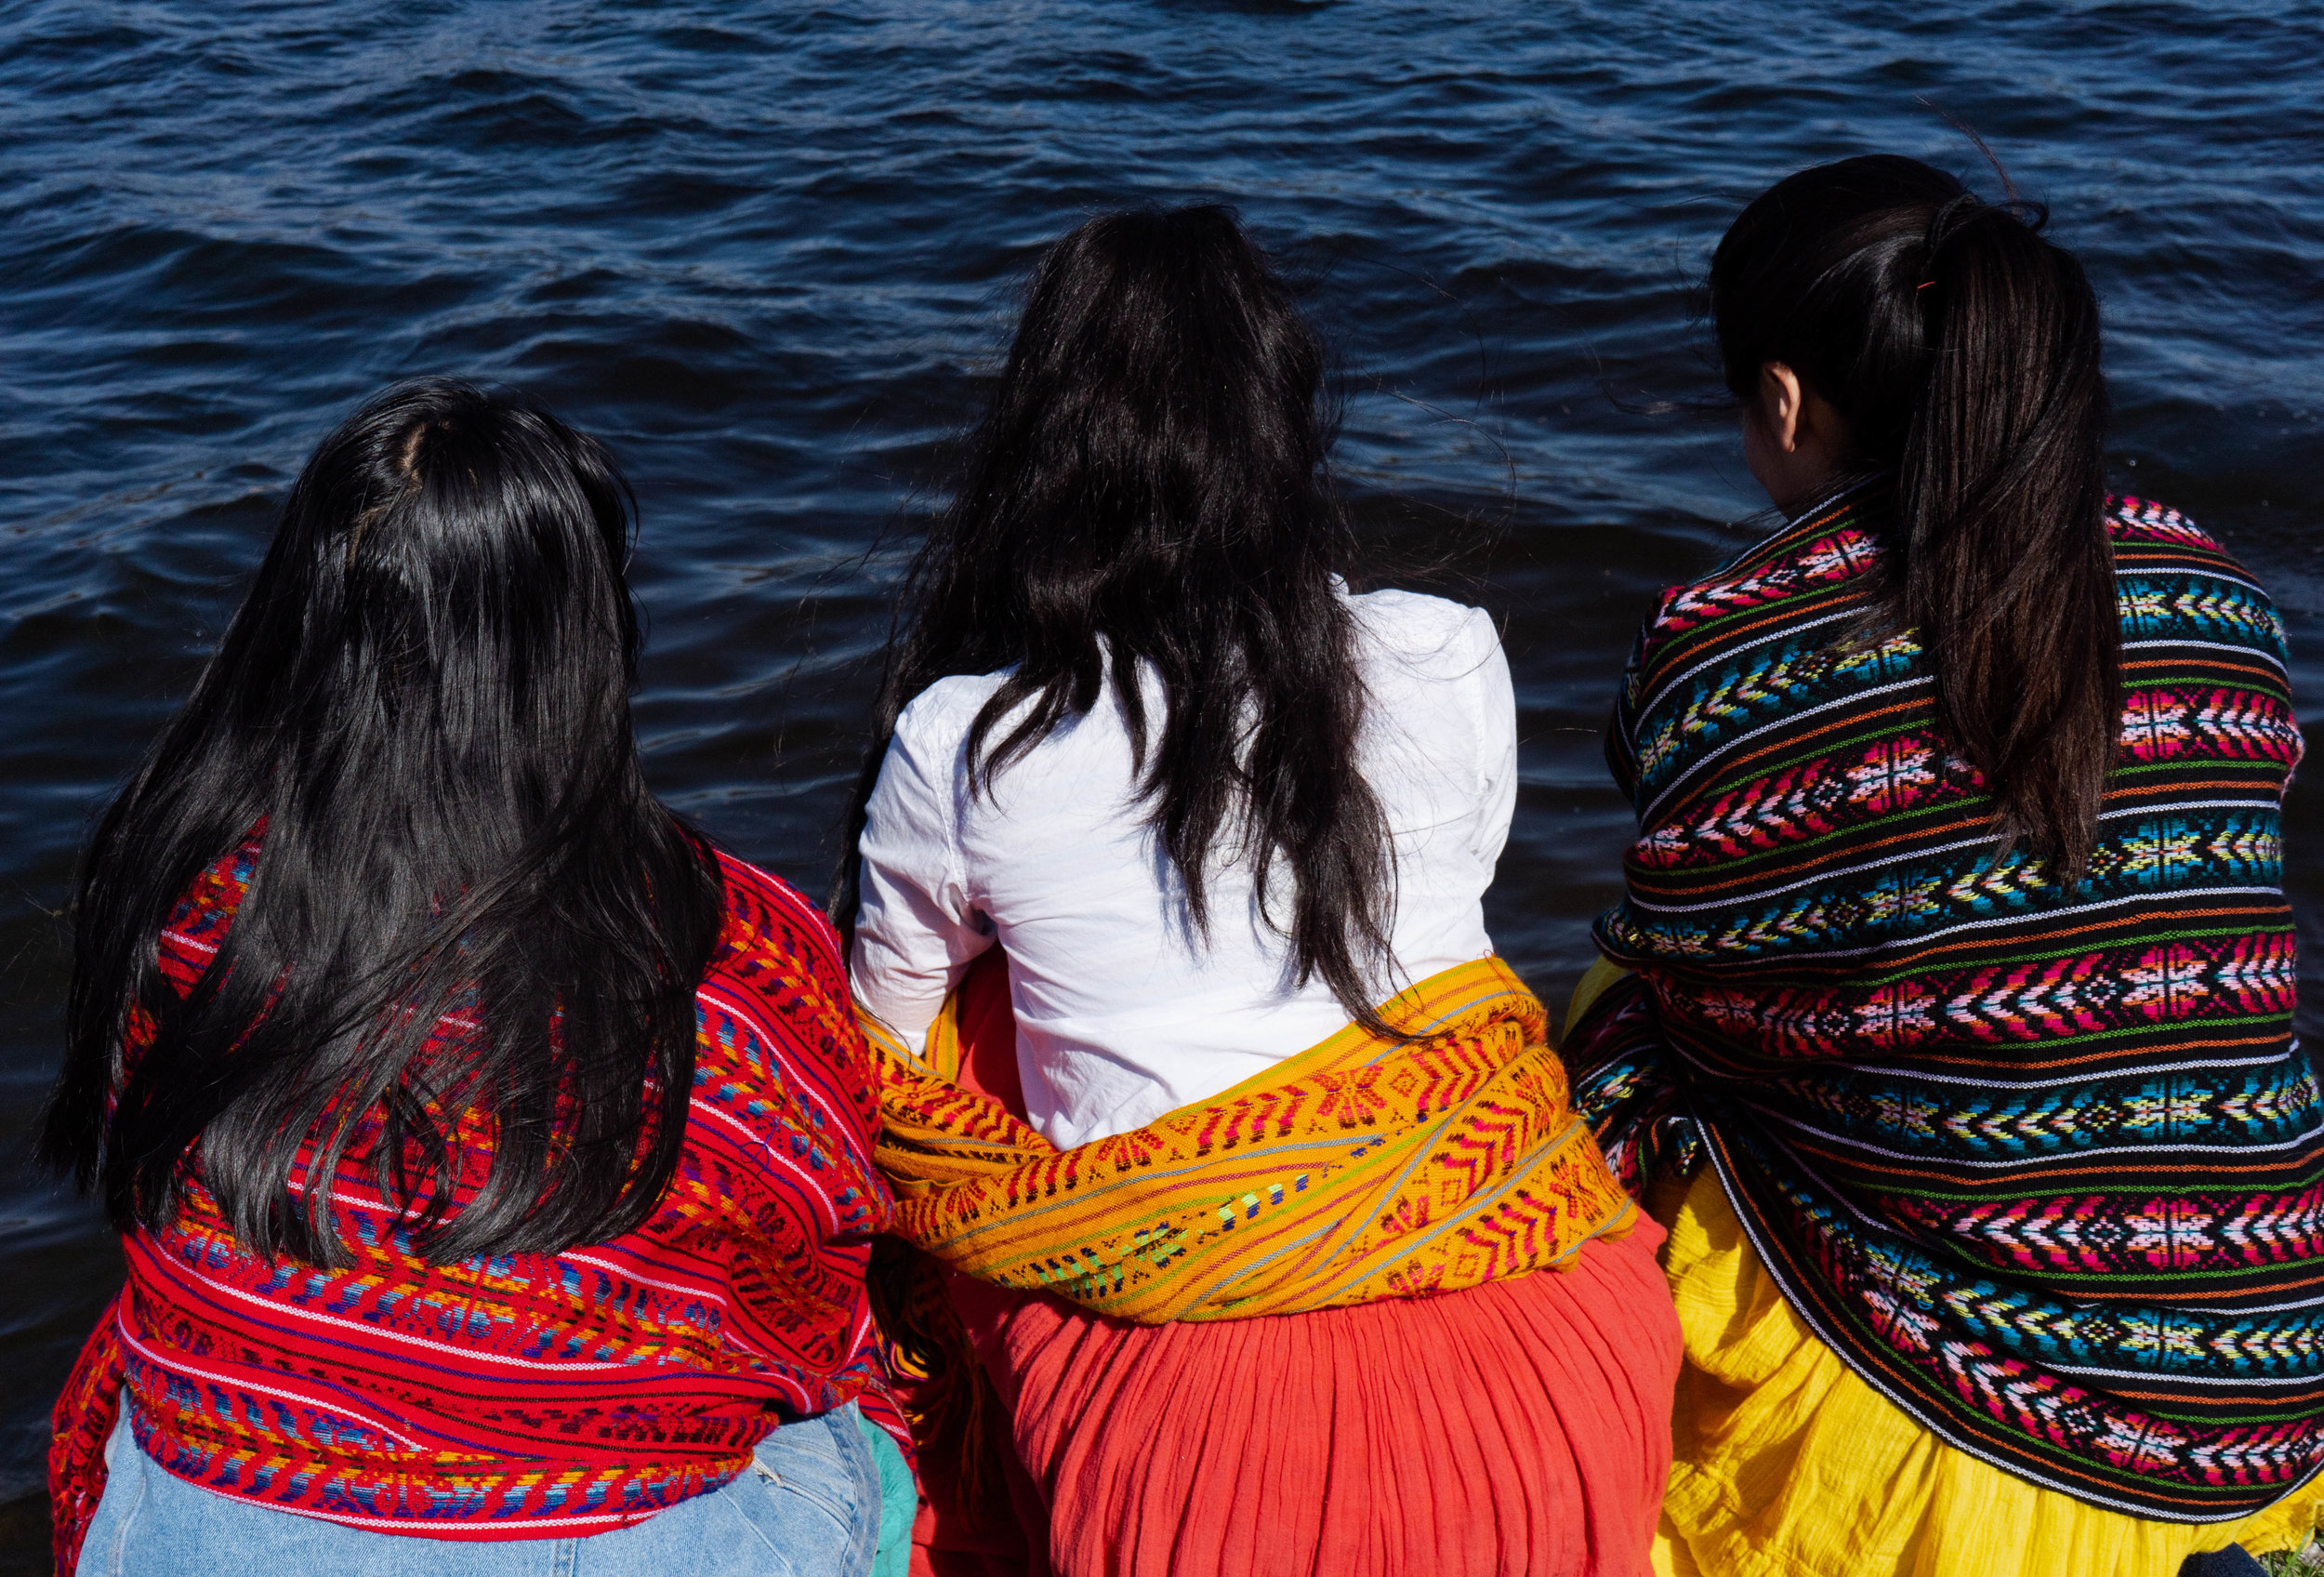 Reyna Day (left), Atquetzali Quiroz (middle), and Amoreina Espinosa (right) staring out to Lake Phalen before the water ritual.